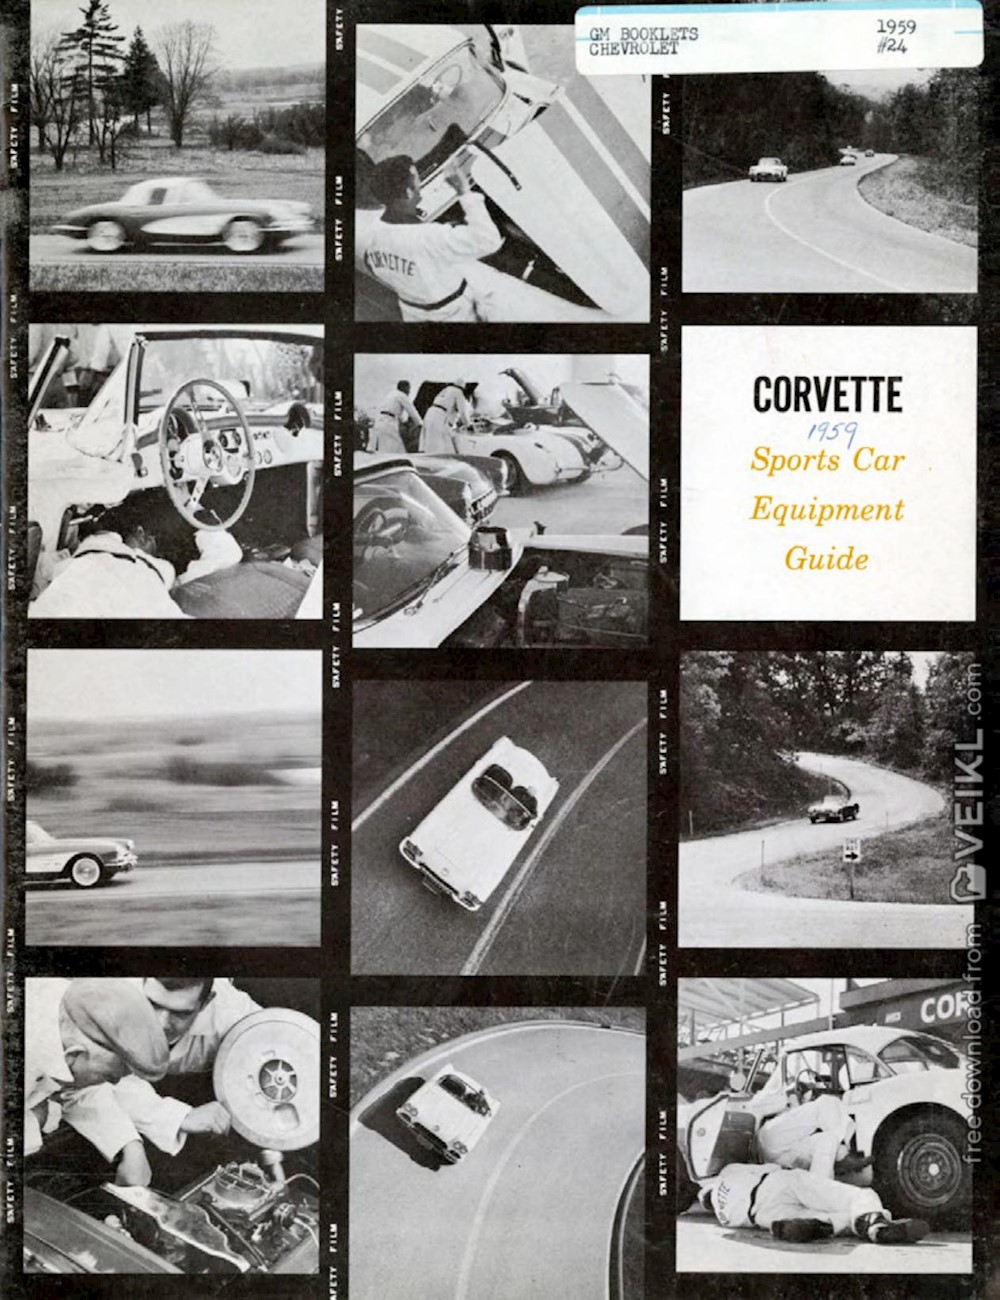 Chevrolet Corvette Rquipment Guide Brochure 1959 EN